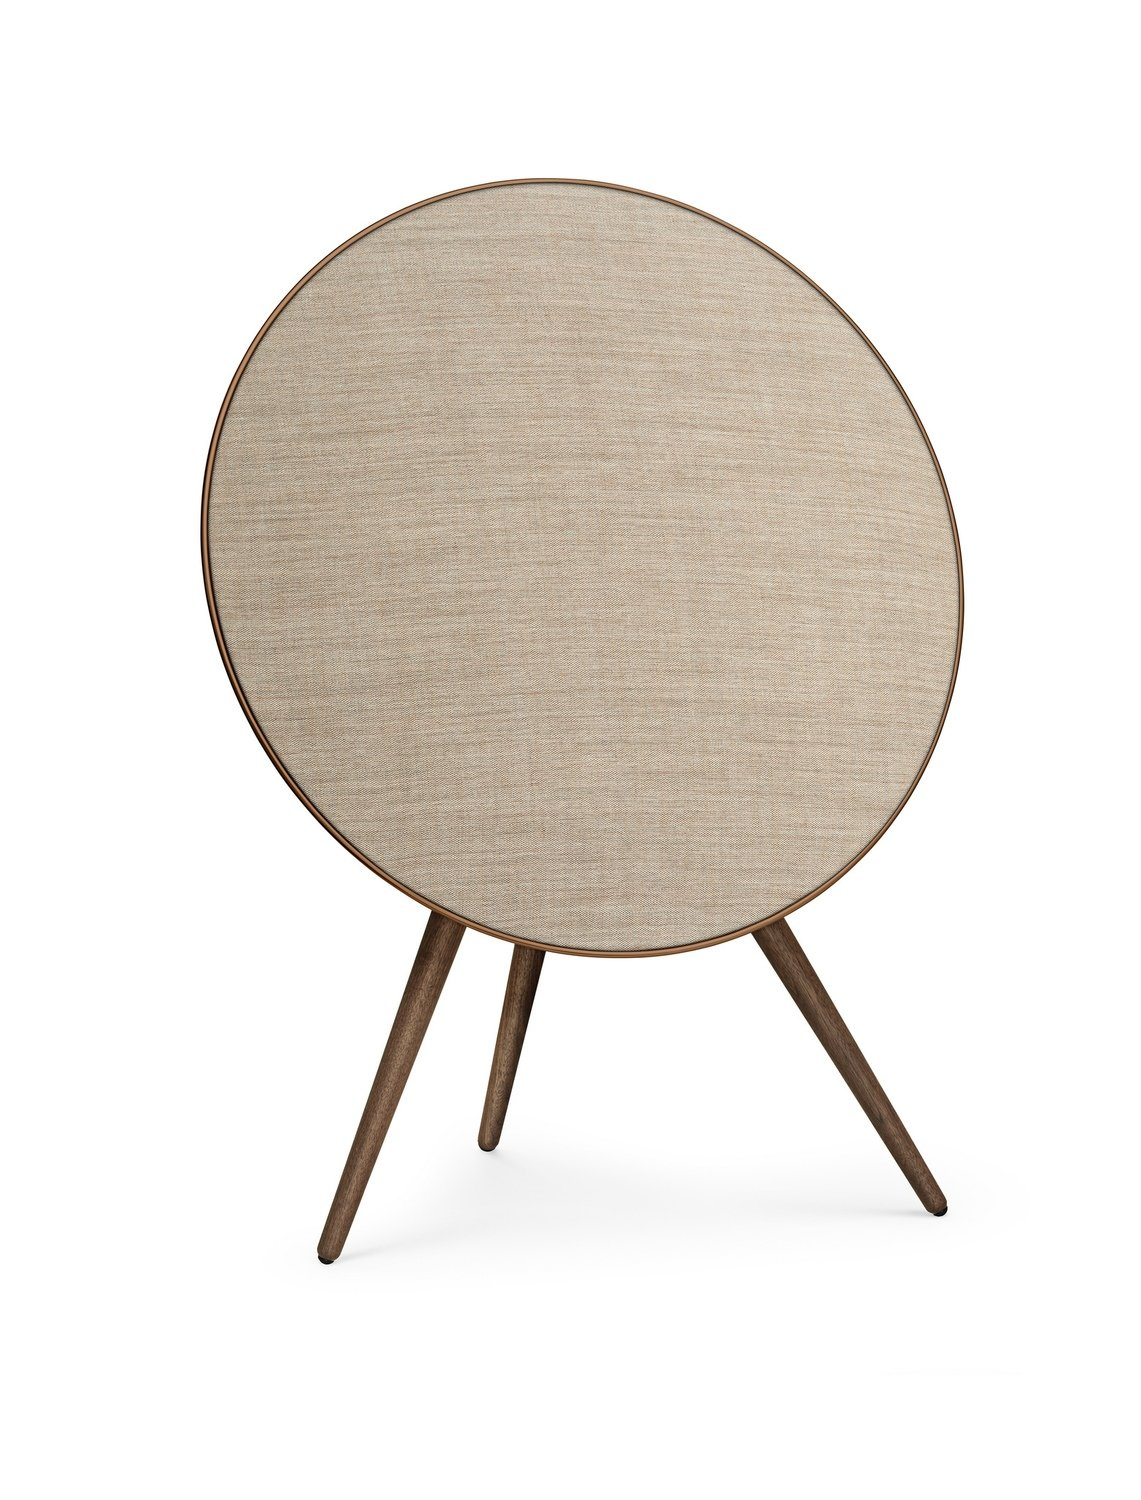 Beoplay A9 mit Google Assistant - 4. Generation - Bronze Tone